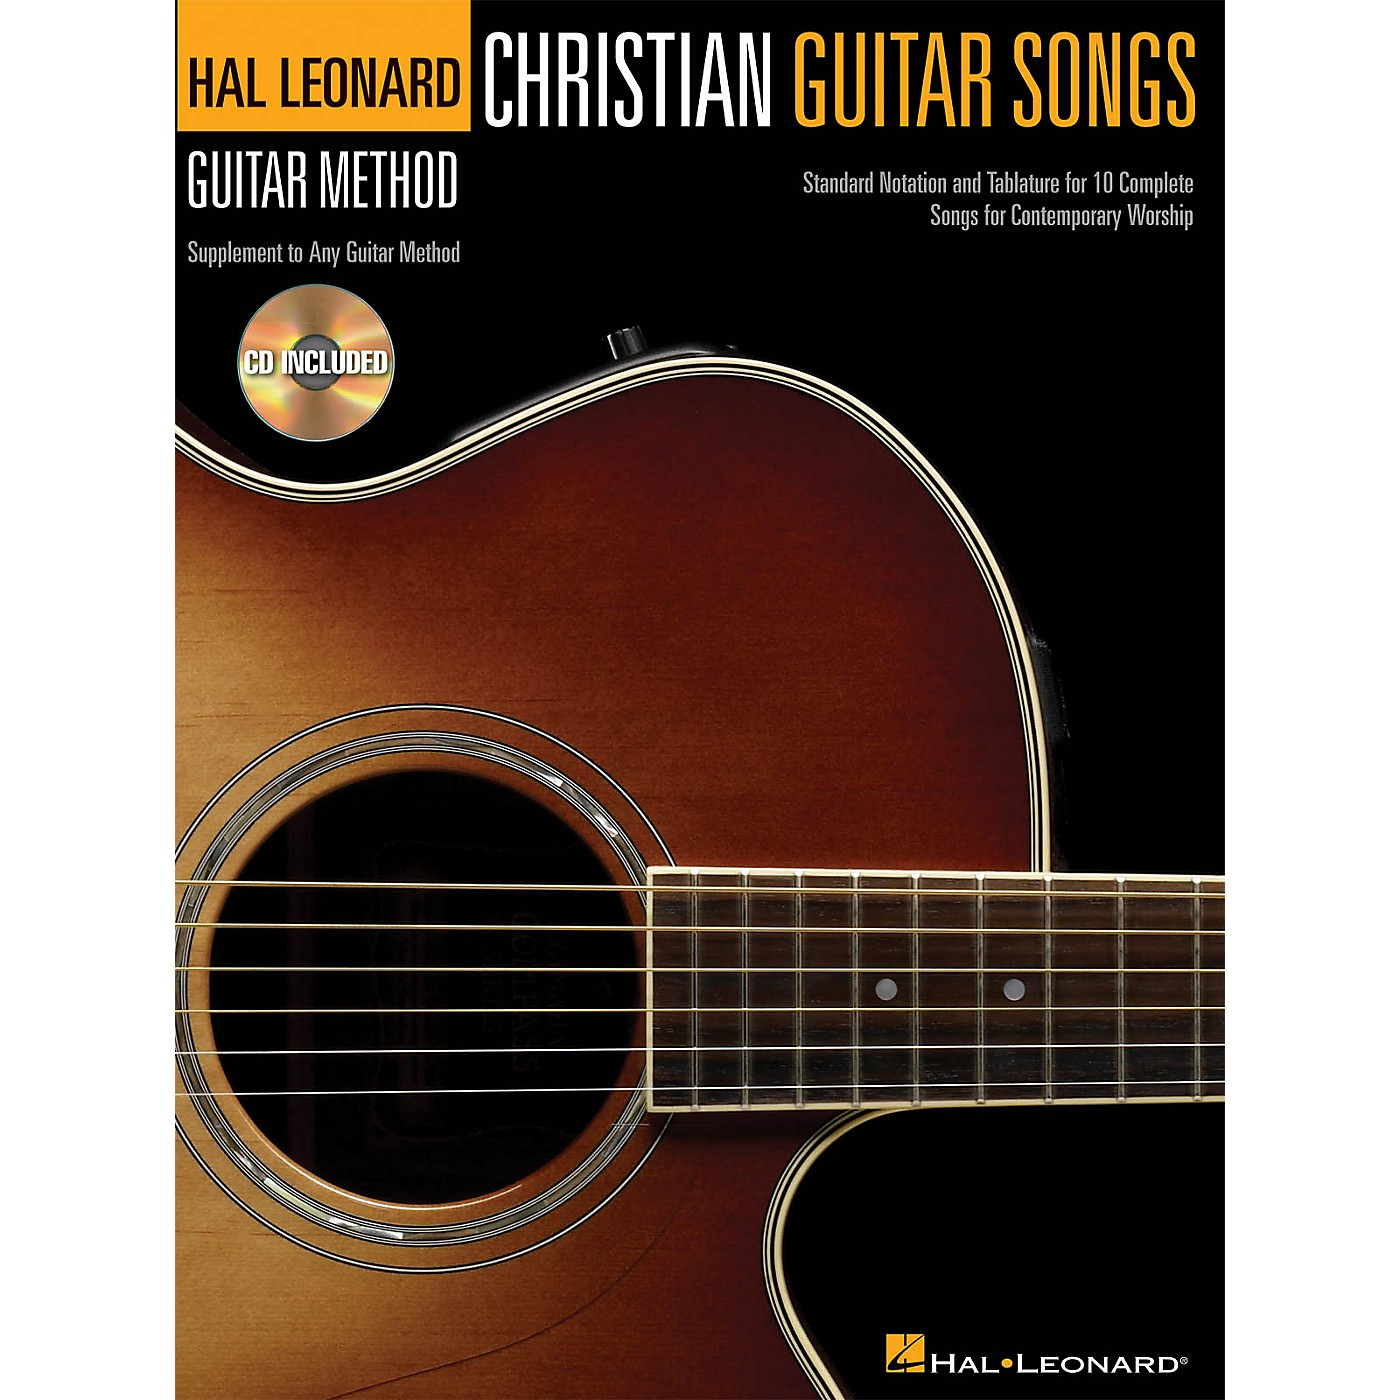 Hal Leonard Christian Guitar Songs (Hal Leonard Guitar Method) Guitar Method Series Softcover with CD by Various thumbnail